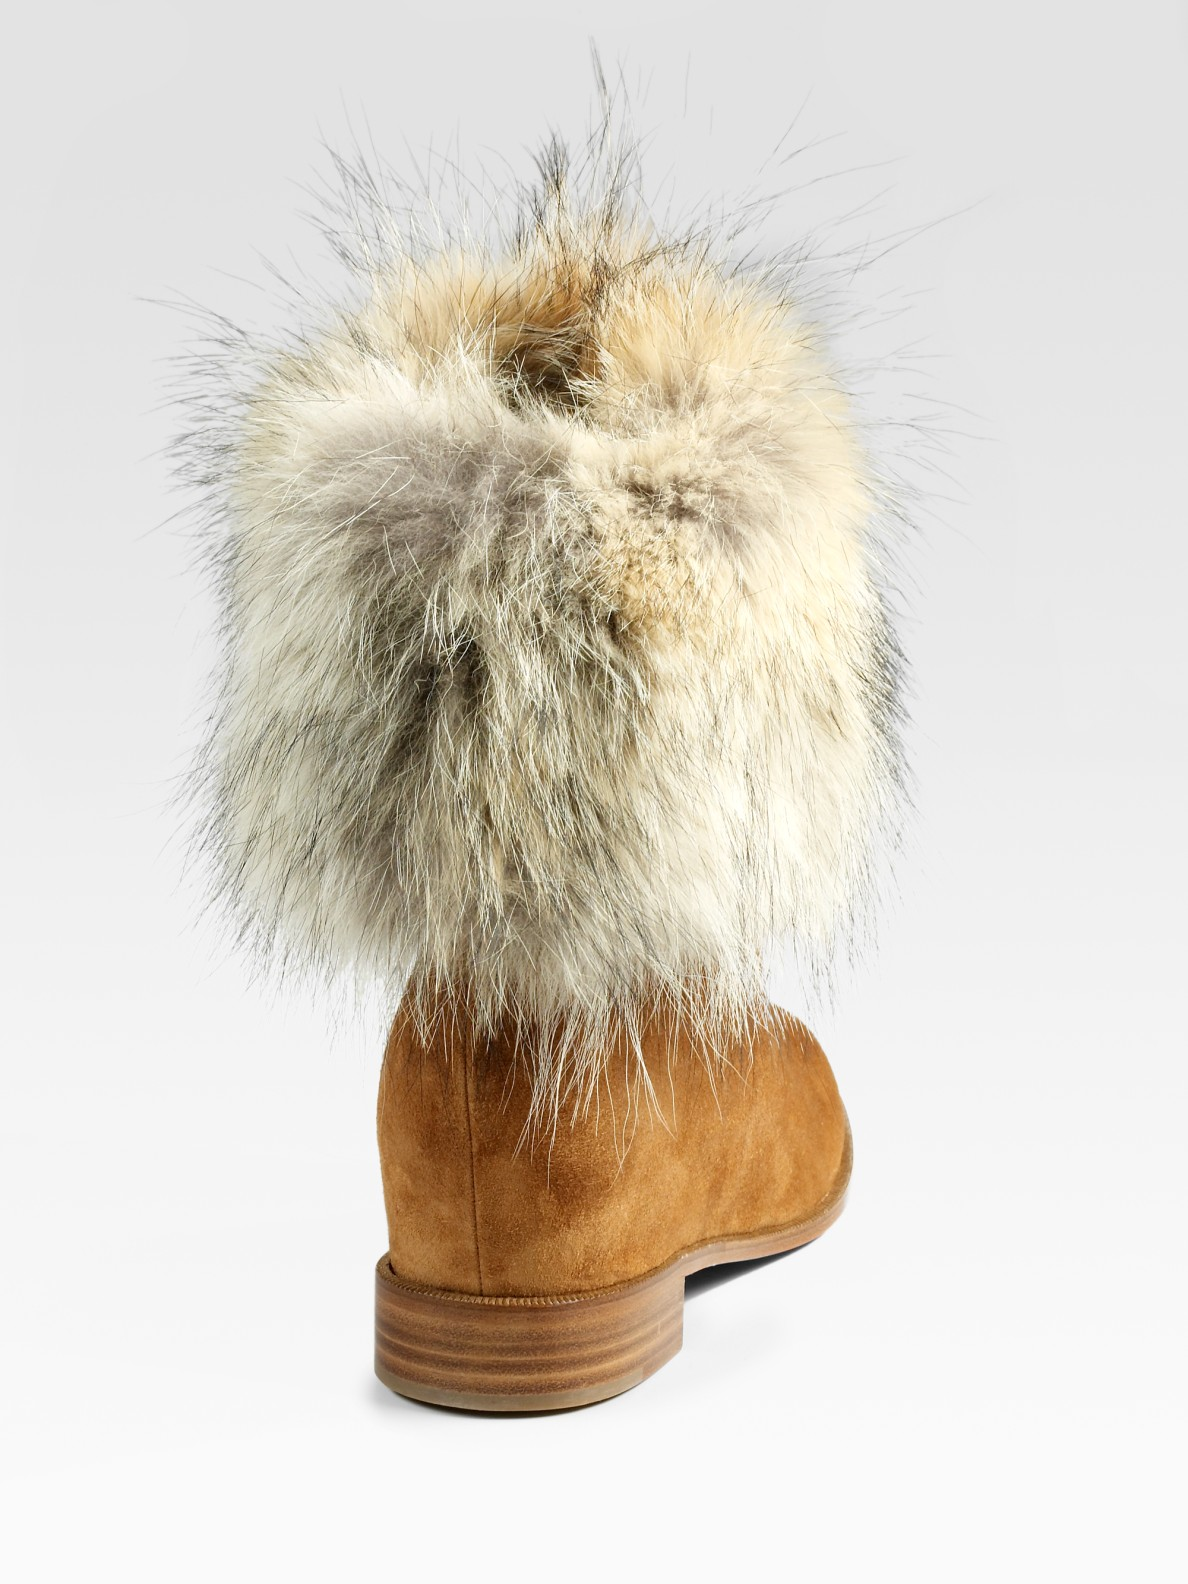 christian-louboutin-tan-mazurka-coyote-fur-suede-boots-brown-product-2-170200-920288549.jpeg